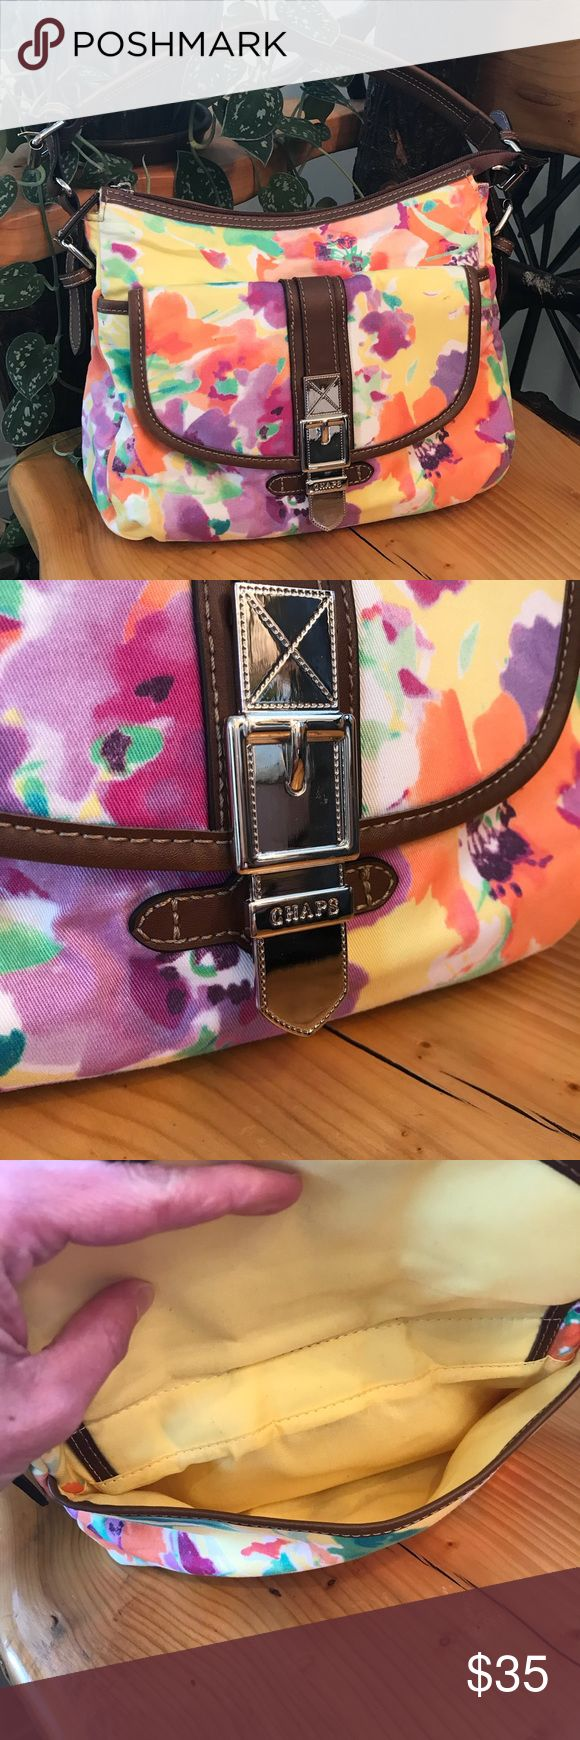 """Chaps Ralph Lauren Watercolor Flowers Bag EUC. Perfect for Spring! Bright and sunny watercolor flowers print with leather and metal accents. Front pocket has magnetic closure, main opening is zipper closure. Interior is yellow with one zippered pocket and 2 open pockets. There is also a zippered pocket in the back. Leather base. No flaws except one tiny pen mark on the inside (last pic). Approximate measurements are 11"""" width, 9"""" height, 3 1/2"""" depth and strap drop is 10"""". Strap length is…"""